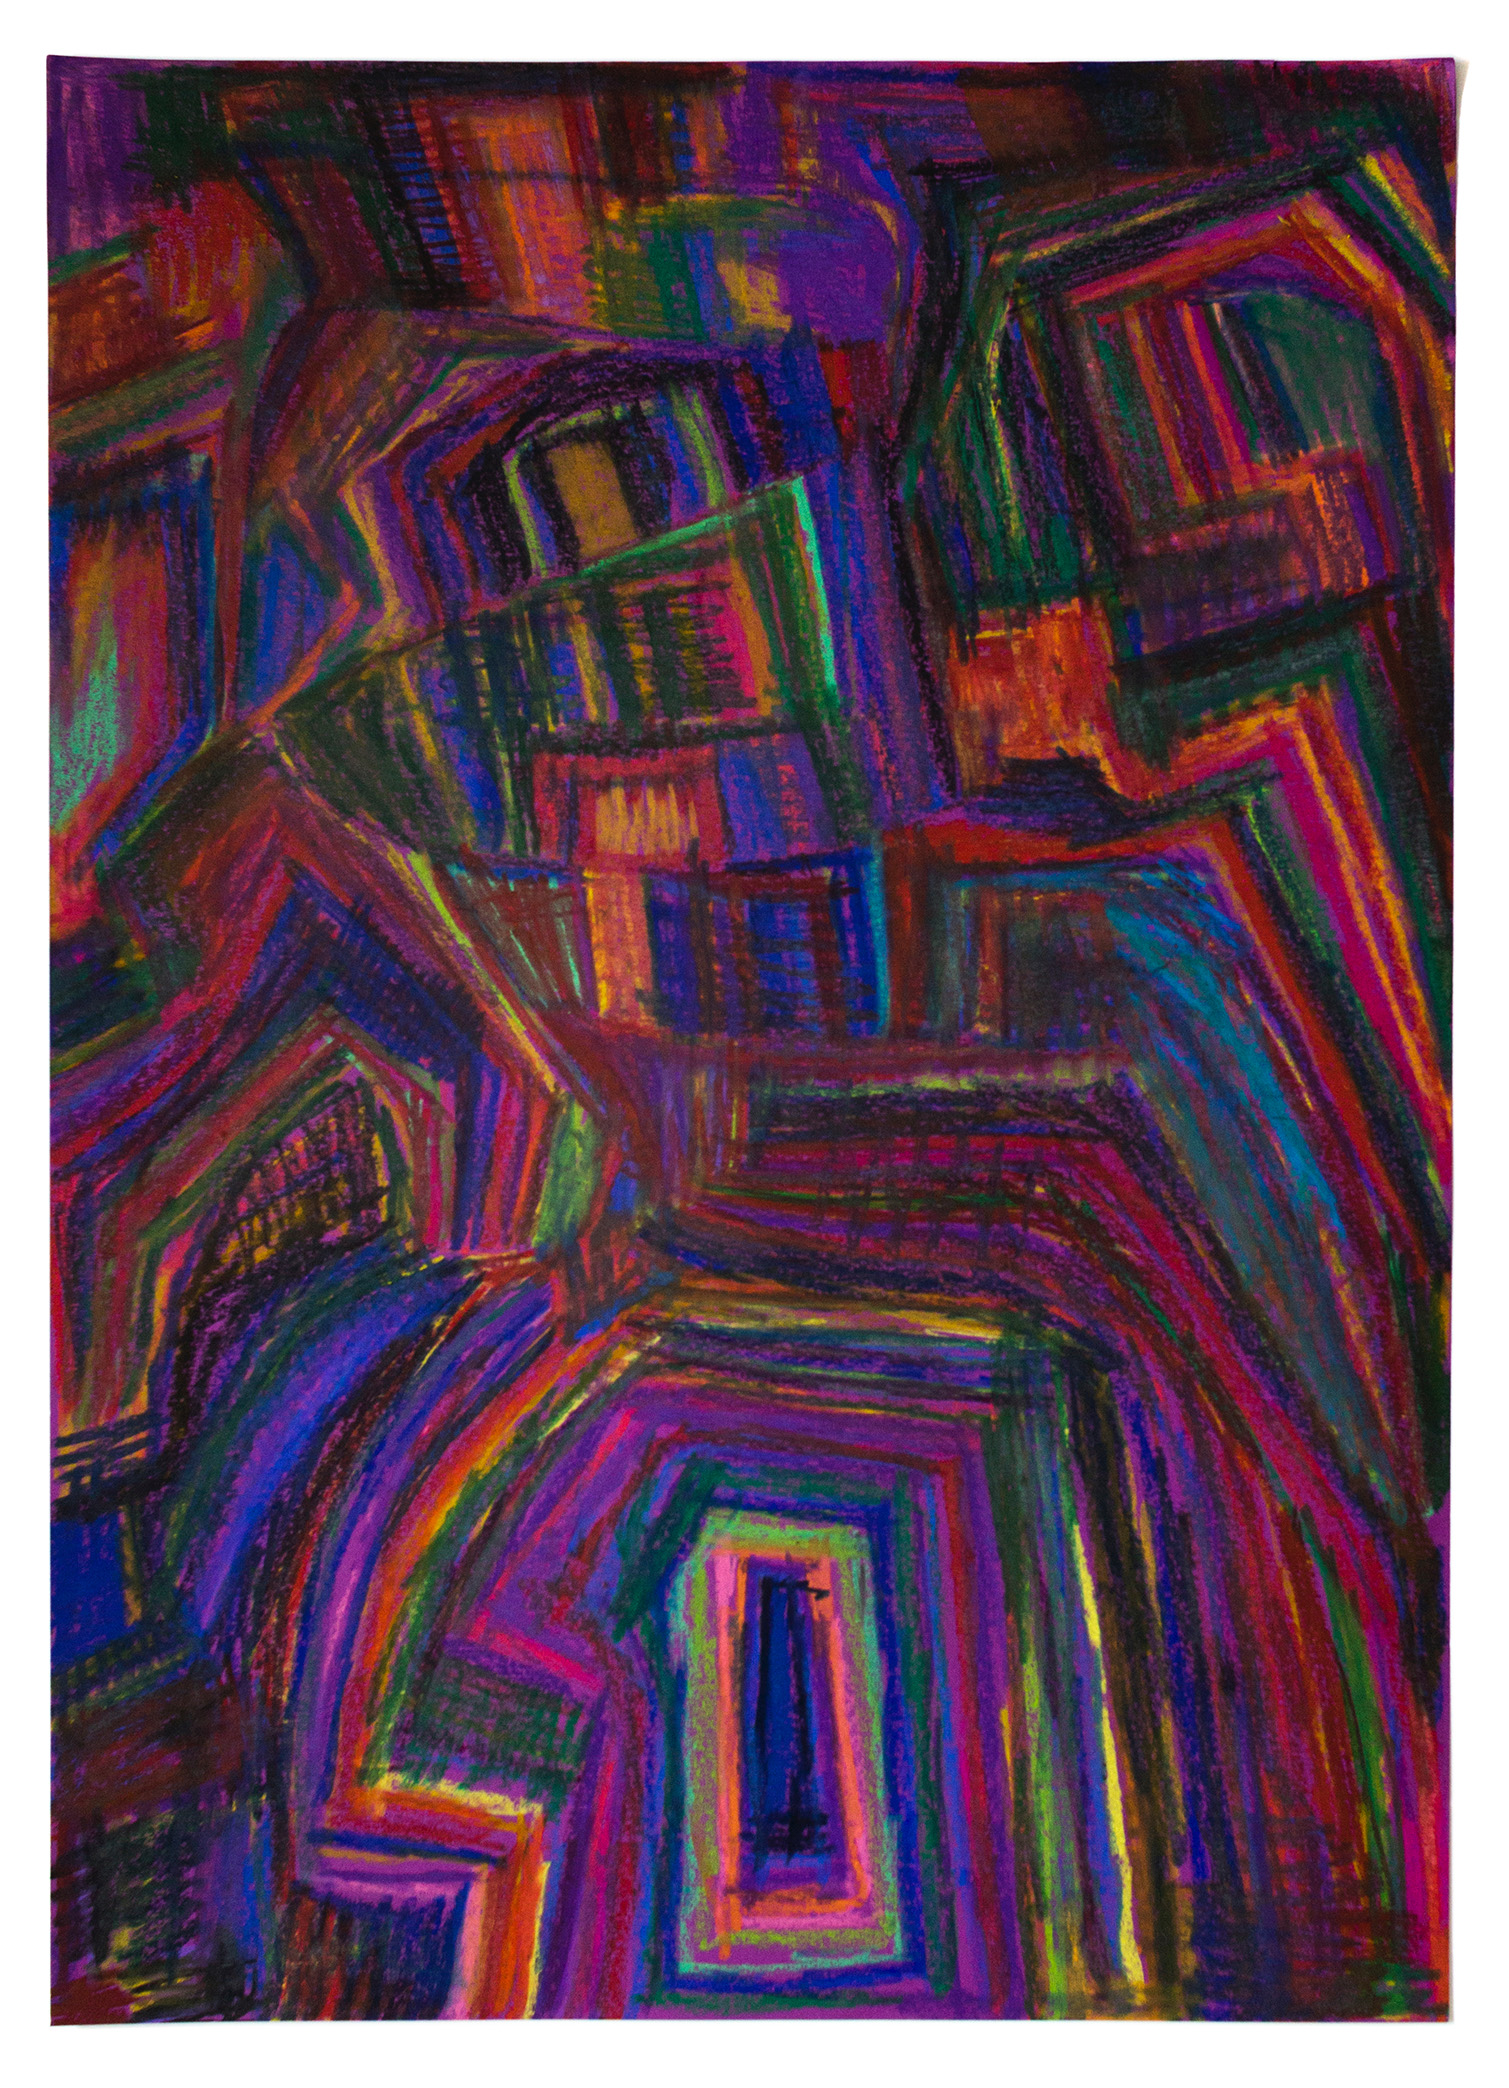 Raydell Early, Untitled (RE 027), Work on paper, 19.75 x 27.5 inches